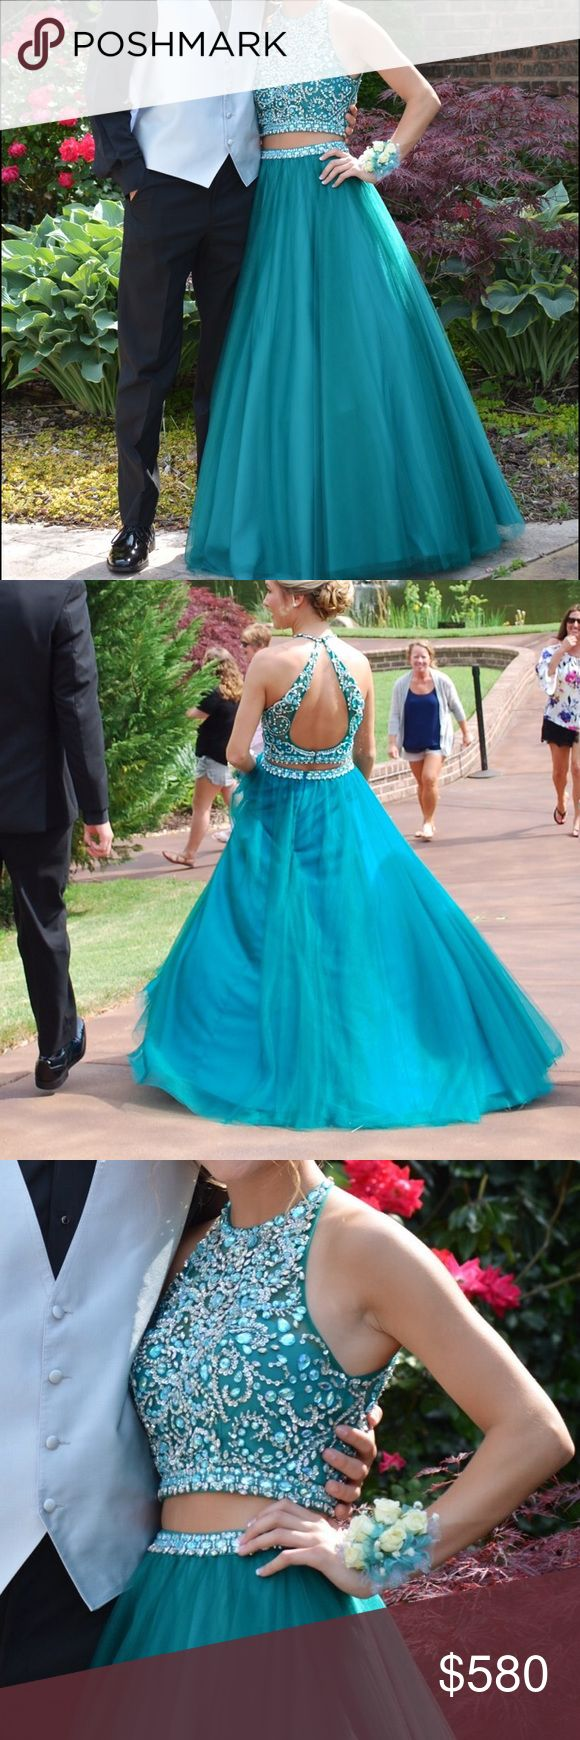 two piece mori lee prom dress only worn once!! the bottom was cut off to fit a 5'4-5'5-5'6 person. perfect condition!!! Mori Lee Dresses Prom